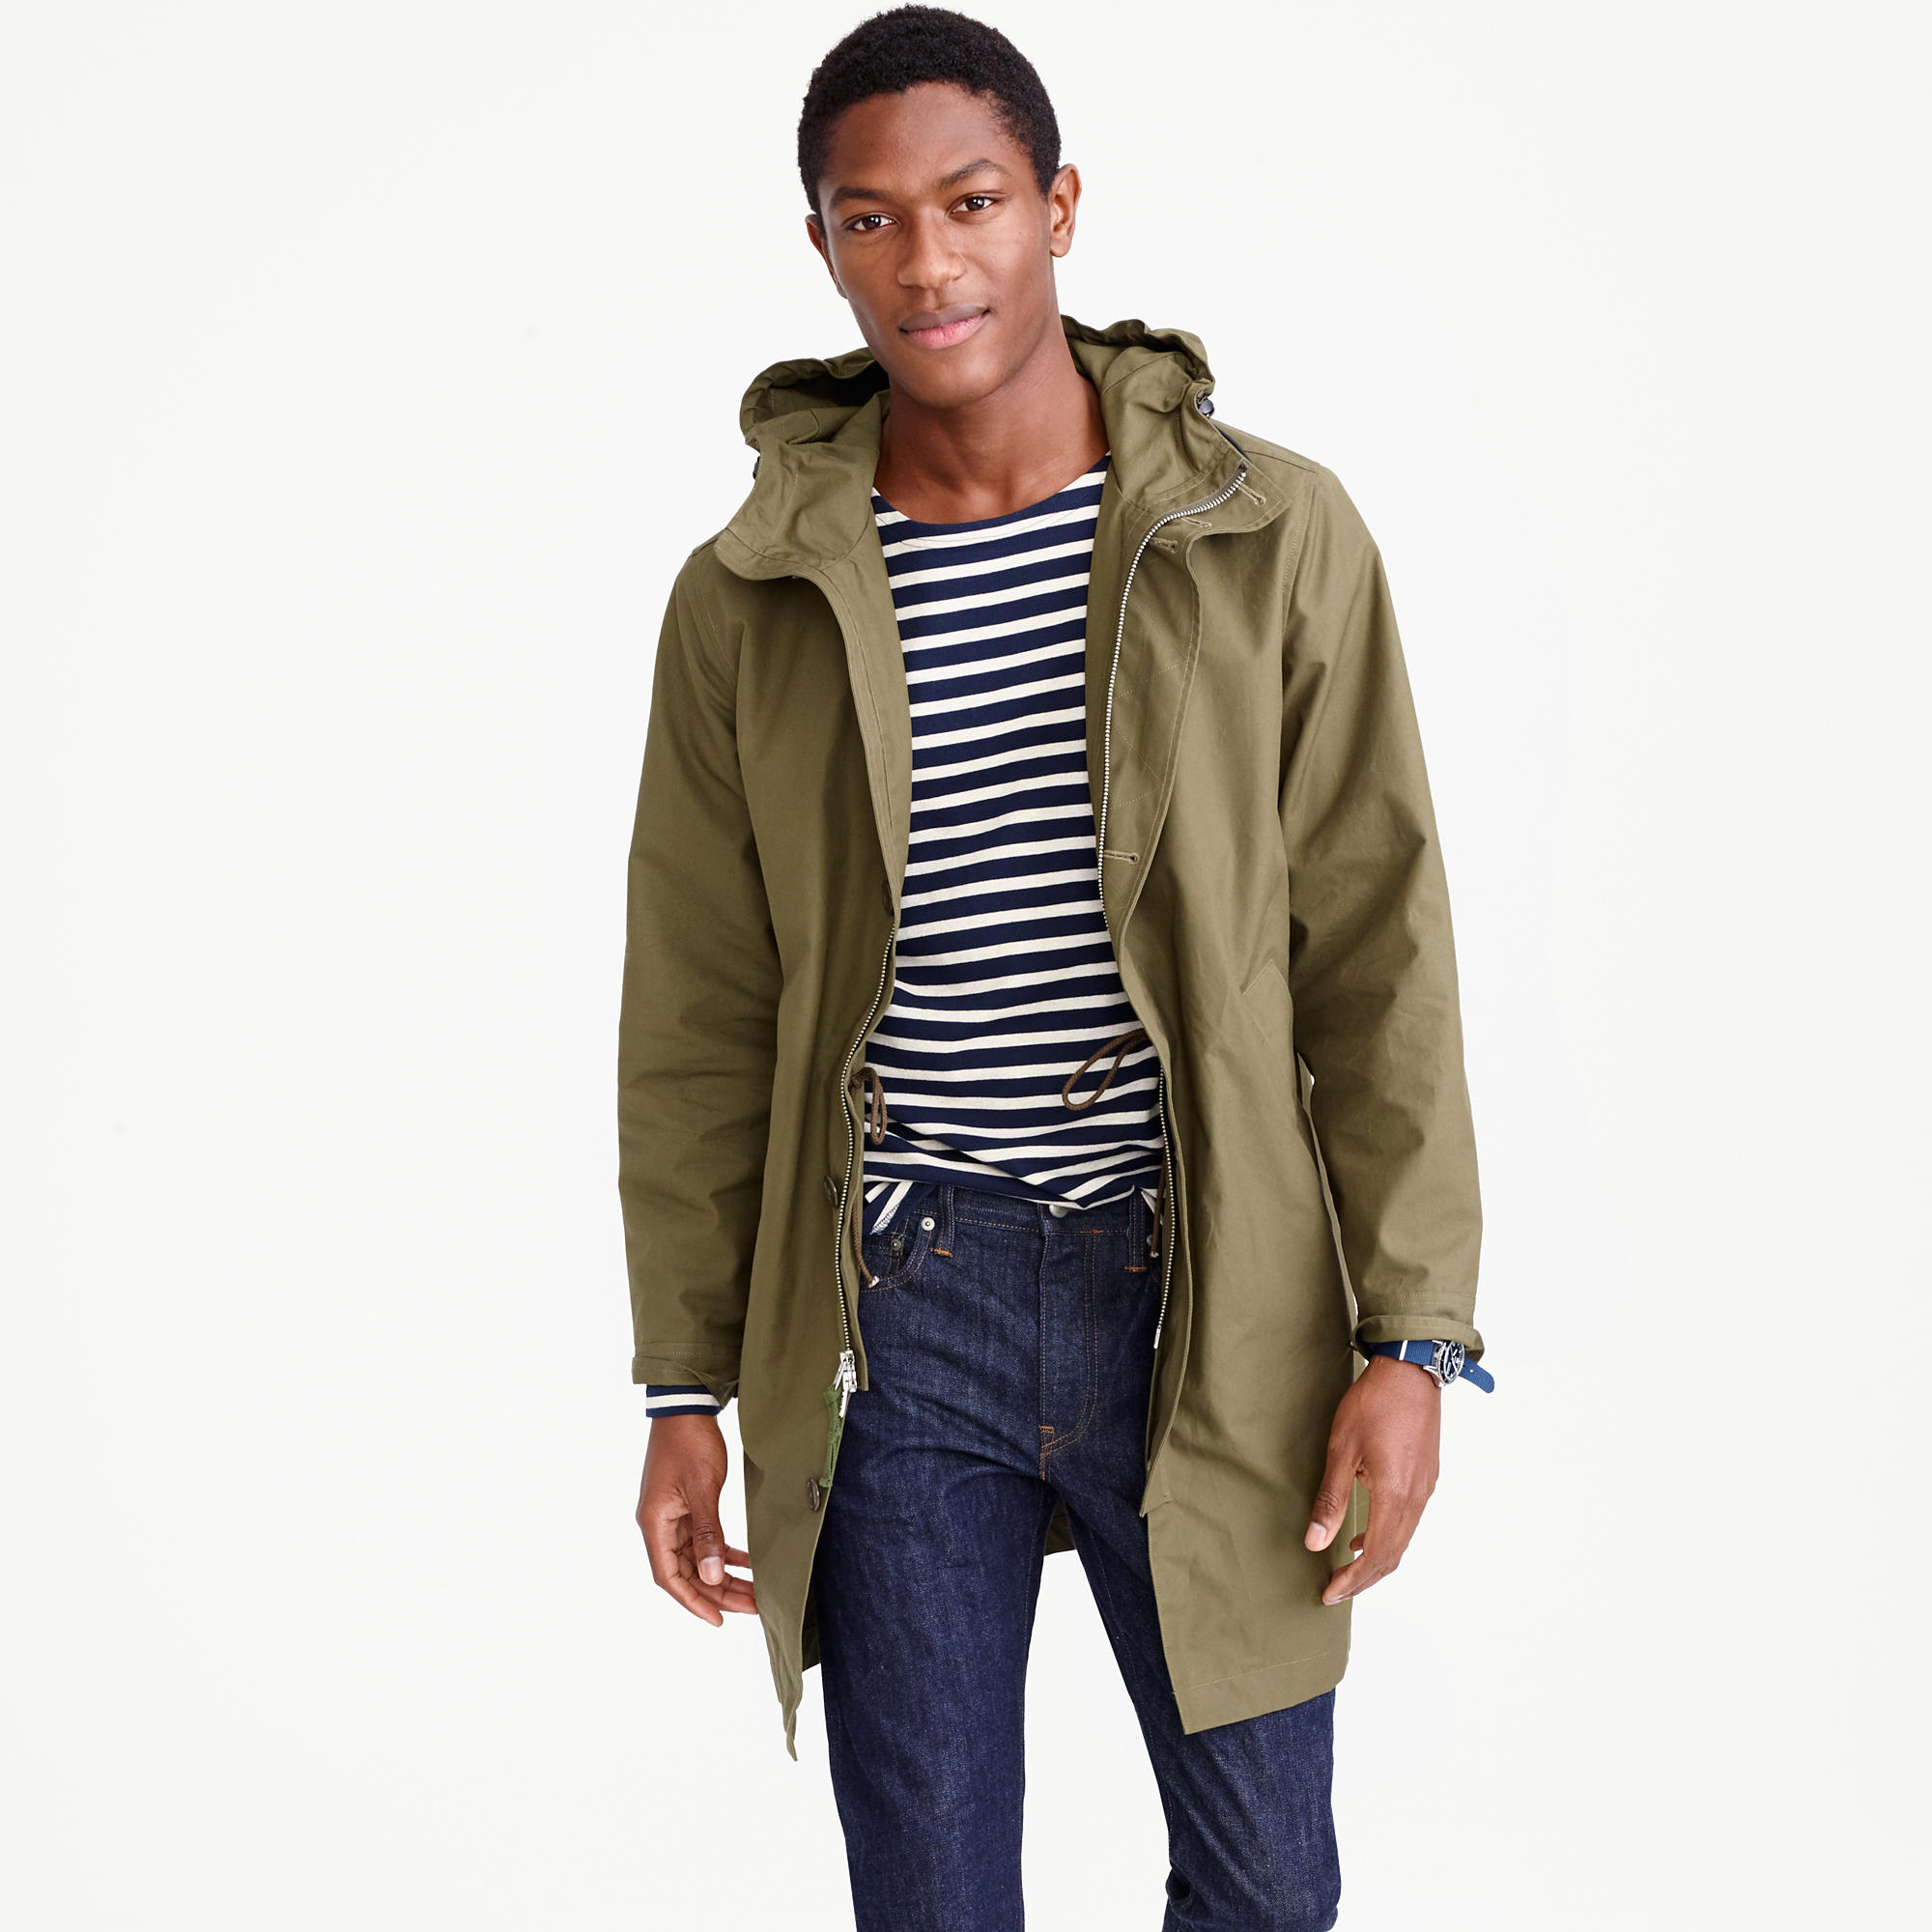 Men's Jackets Trench Coats & Vests : Men's Outerwear | J.Crew